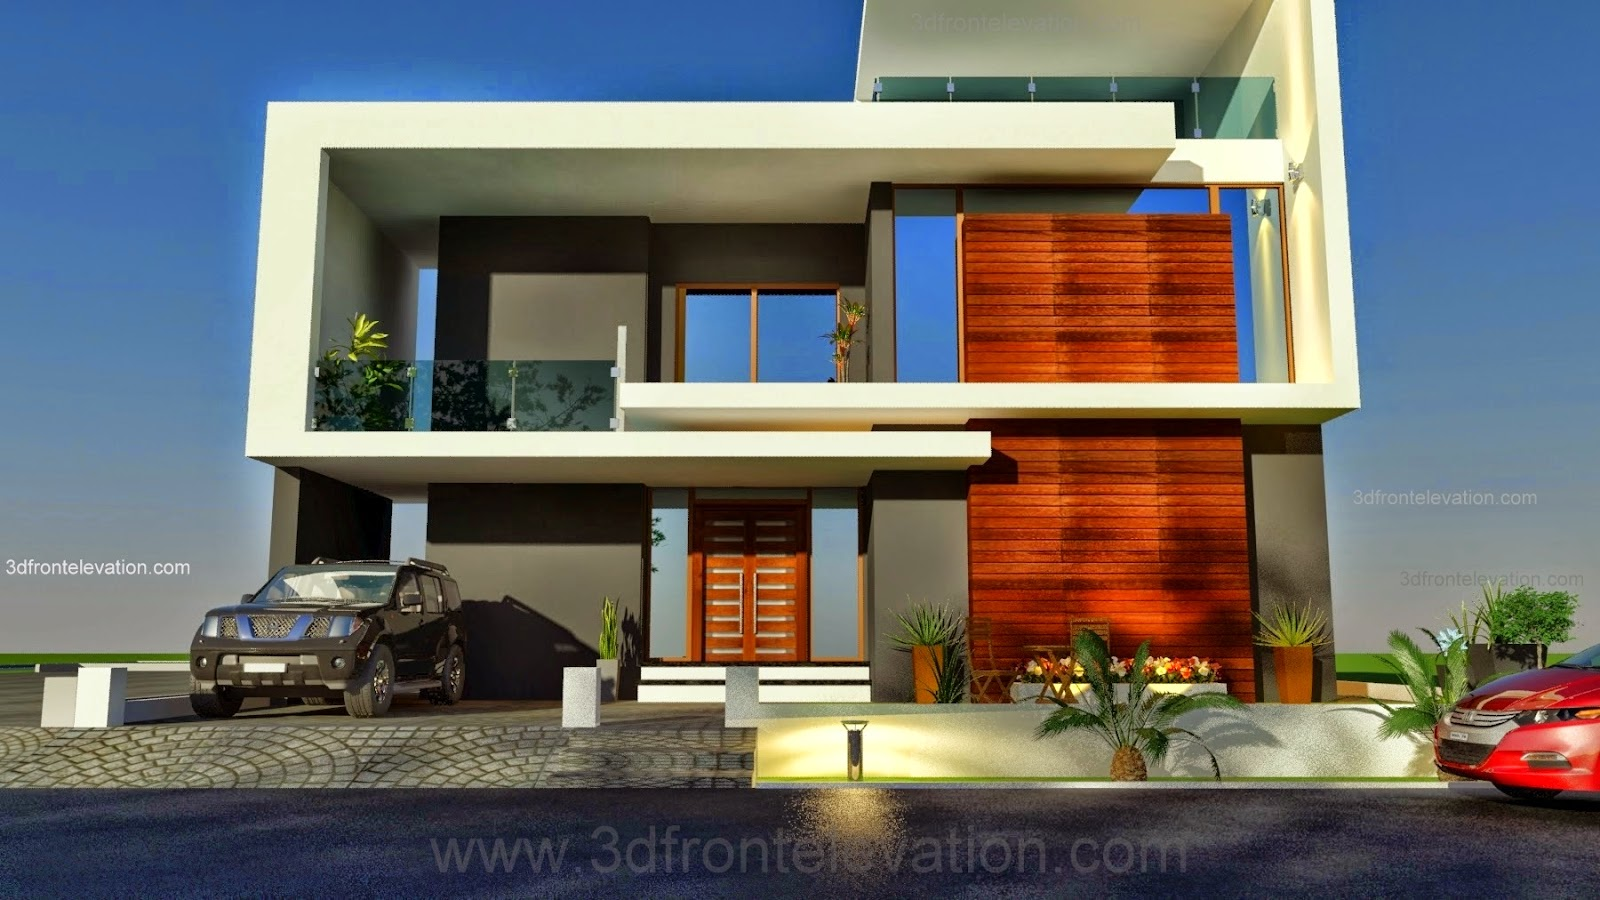 Modern house designs in kashmir modern house for Home design ideas in pakistan